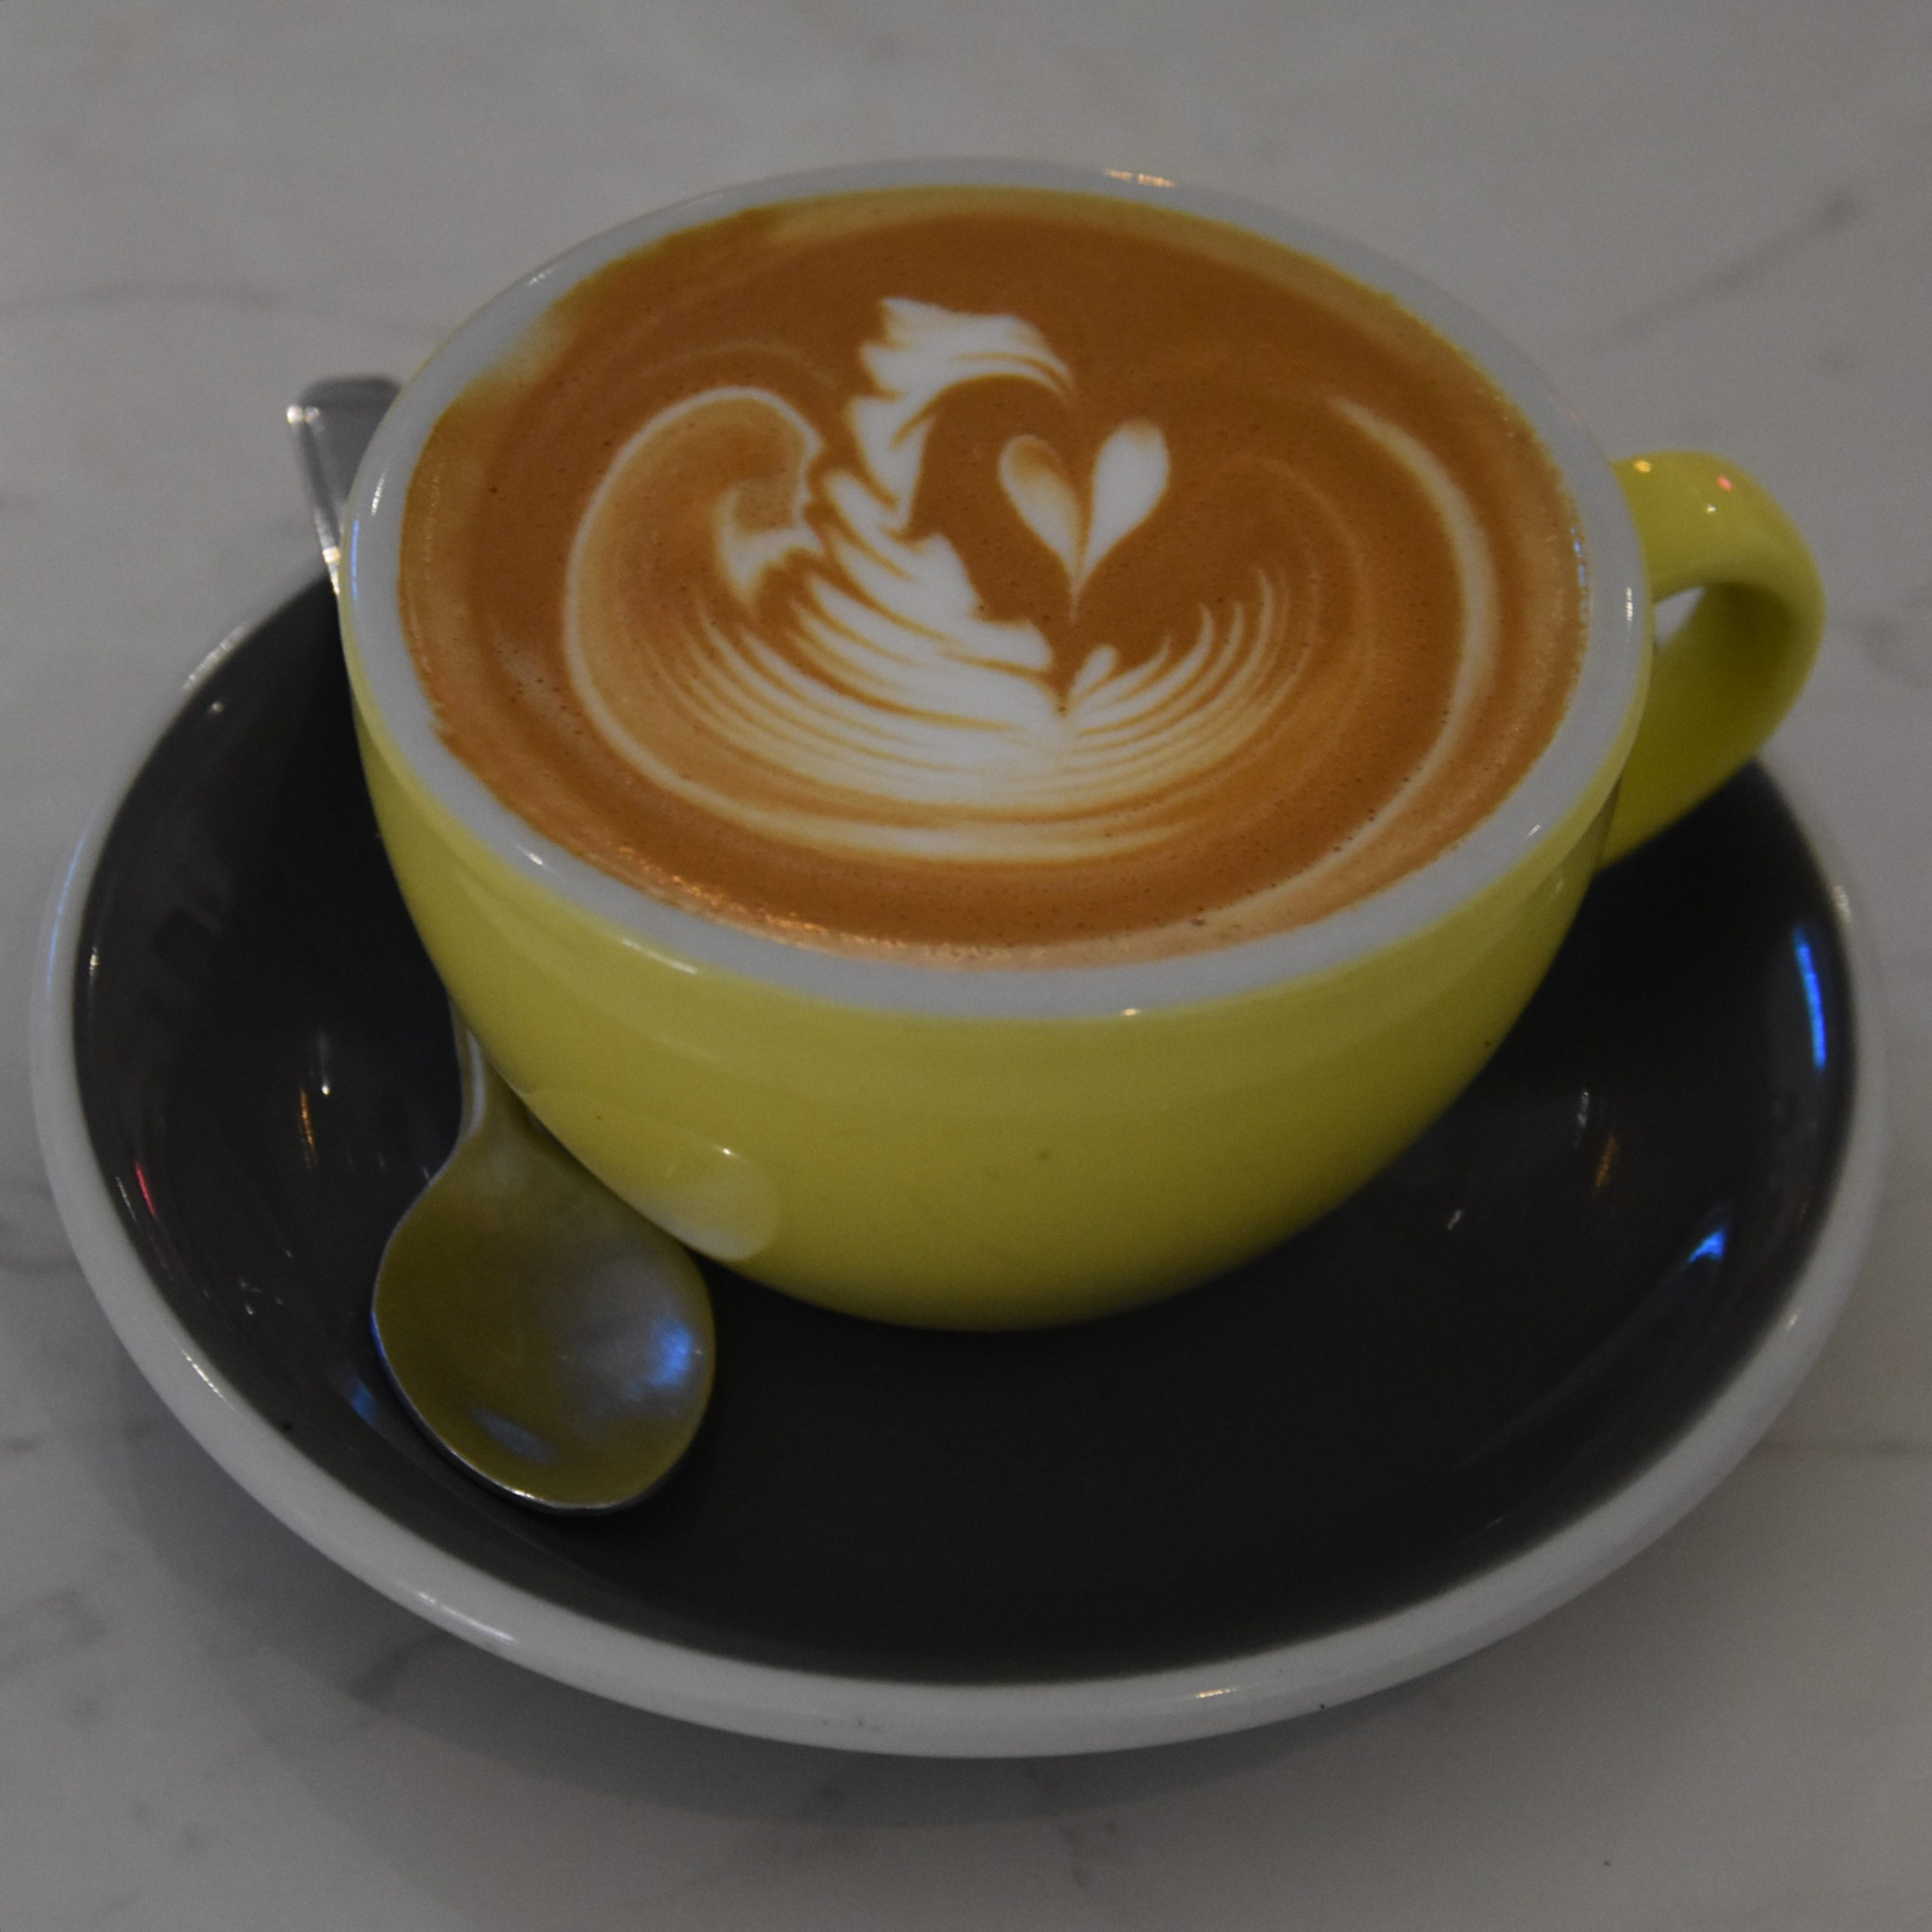 My flat white, made with a naturally-processed Brazilian single-origin from Neighbourhood Coffee, and served at The Flower Cup in a fetching yellow cup with a blue saucer and some awesome latte art.